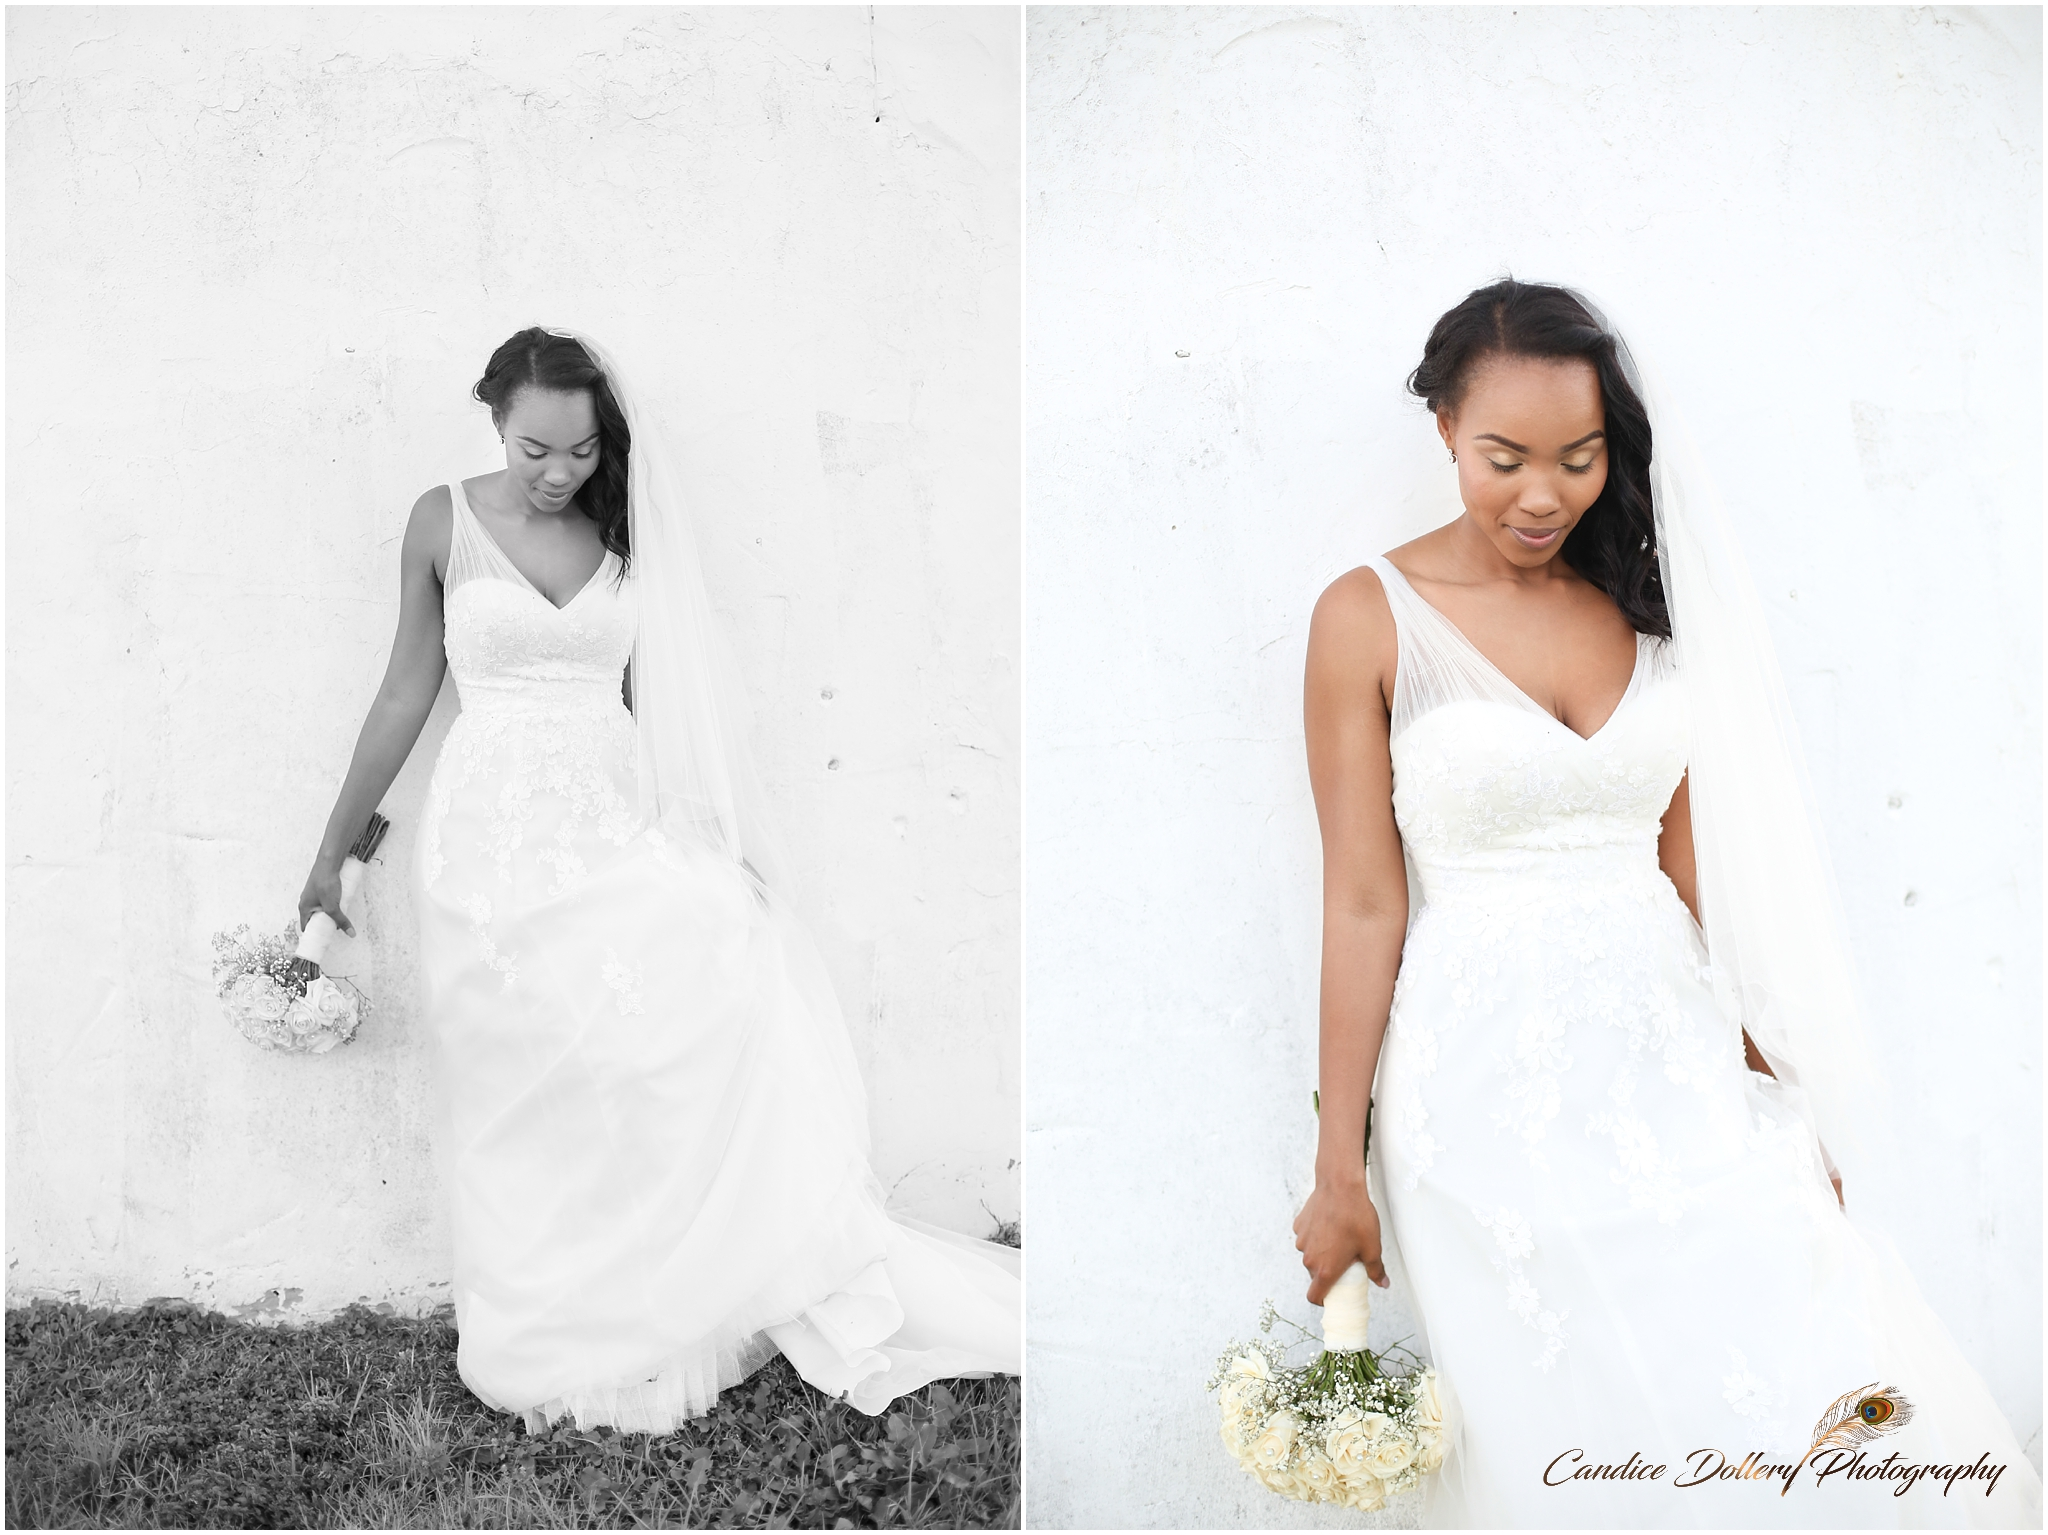 lelethu-kgotsos-wedding-candice-dollery-photography_1713